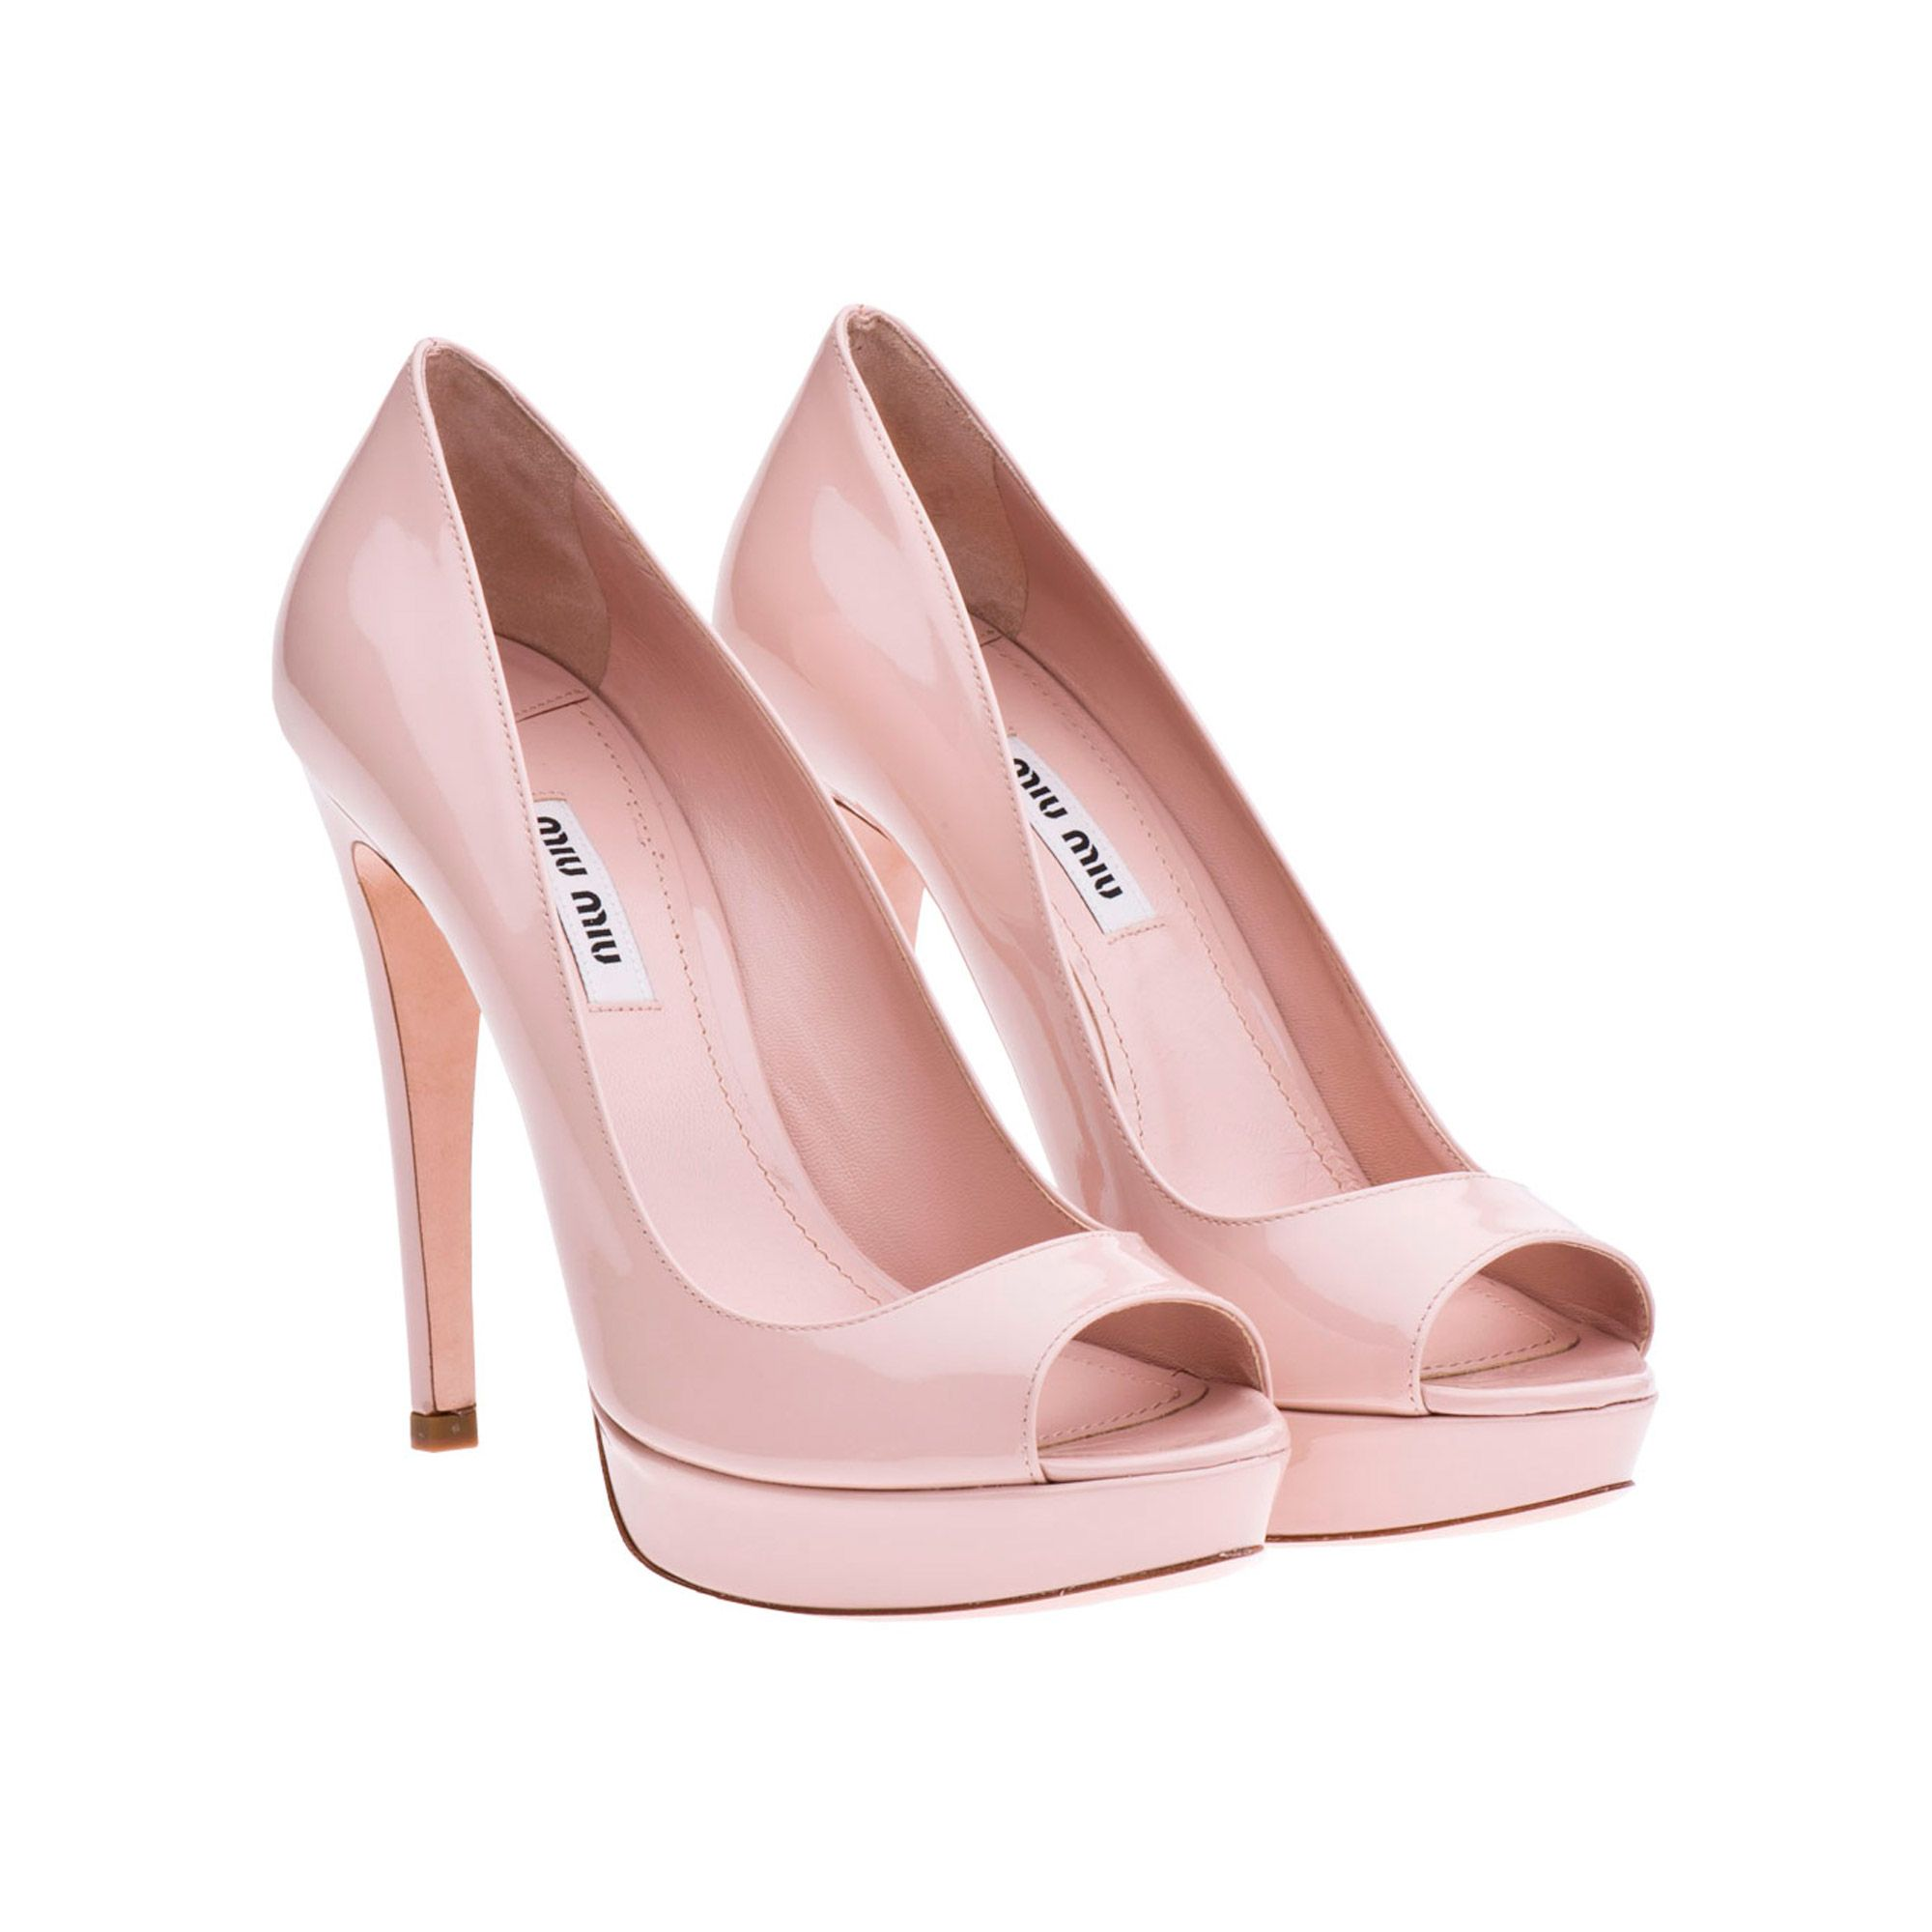 Miu Miu patent leather open-toe platform pumps pale pink | Shotgun ...